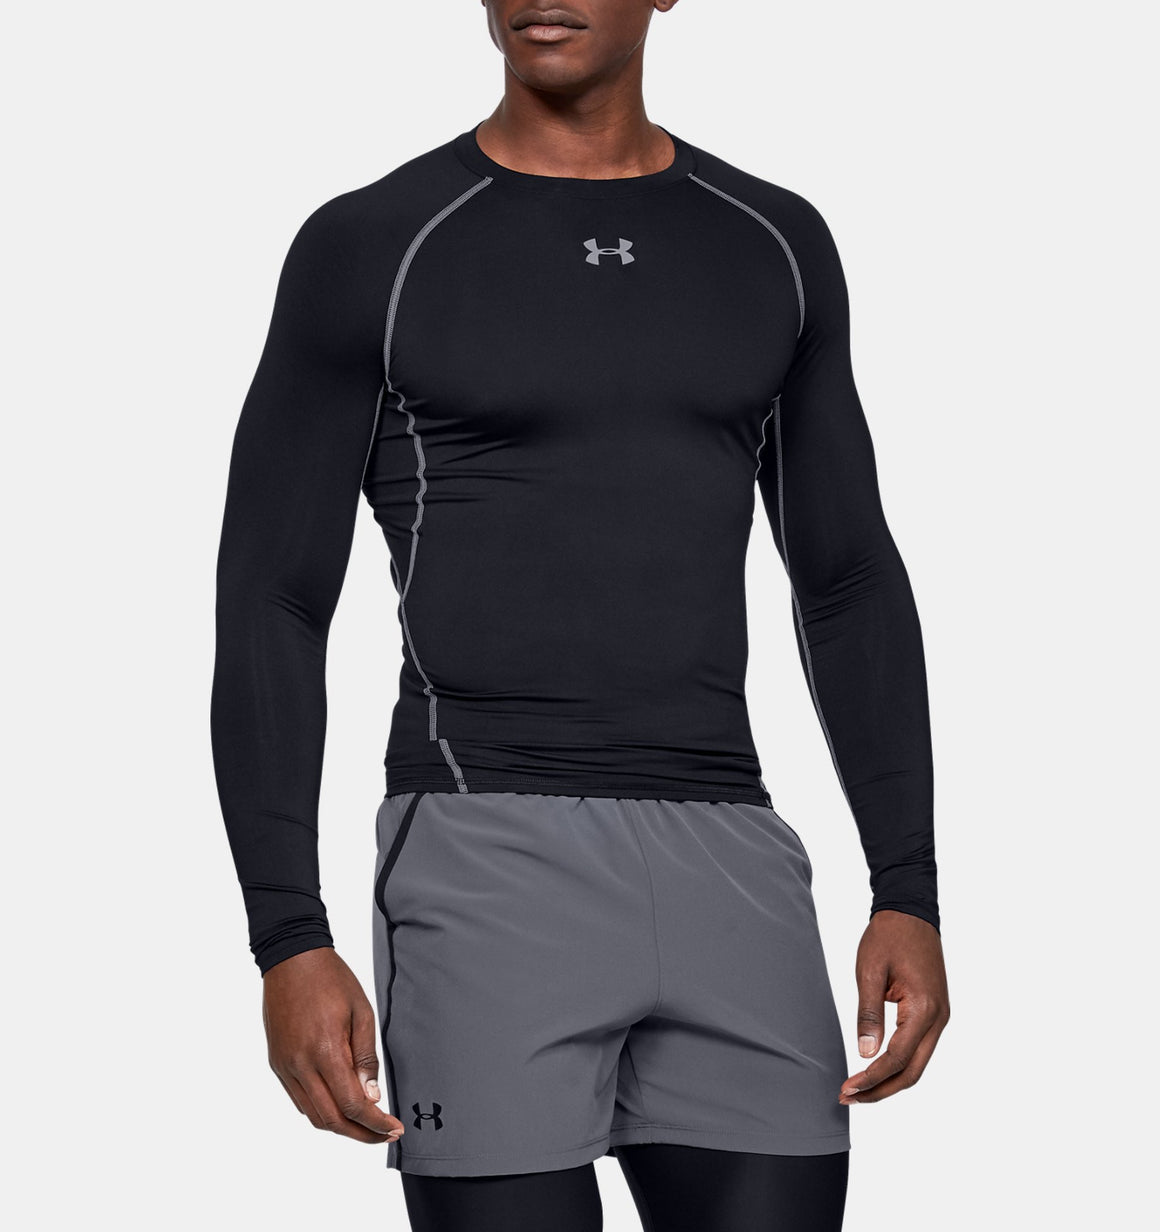 Under Armour Heat Gear Compression Long Sleeve